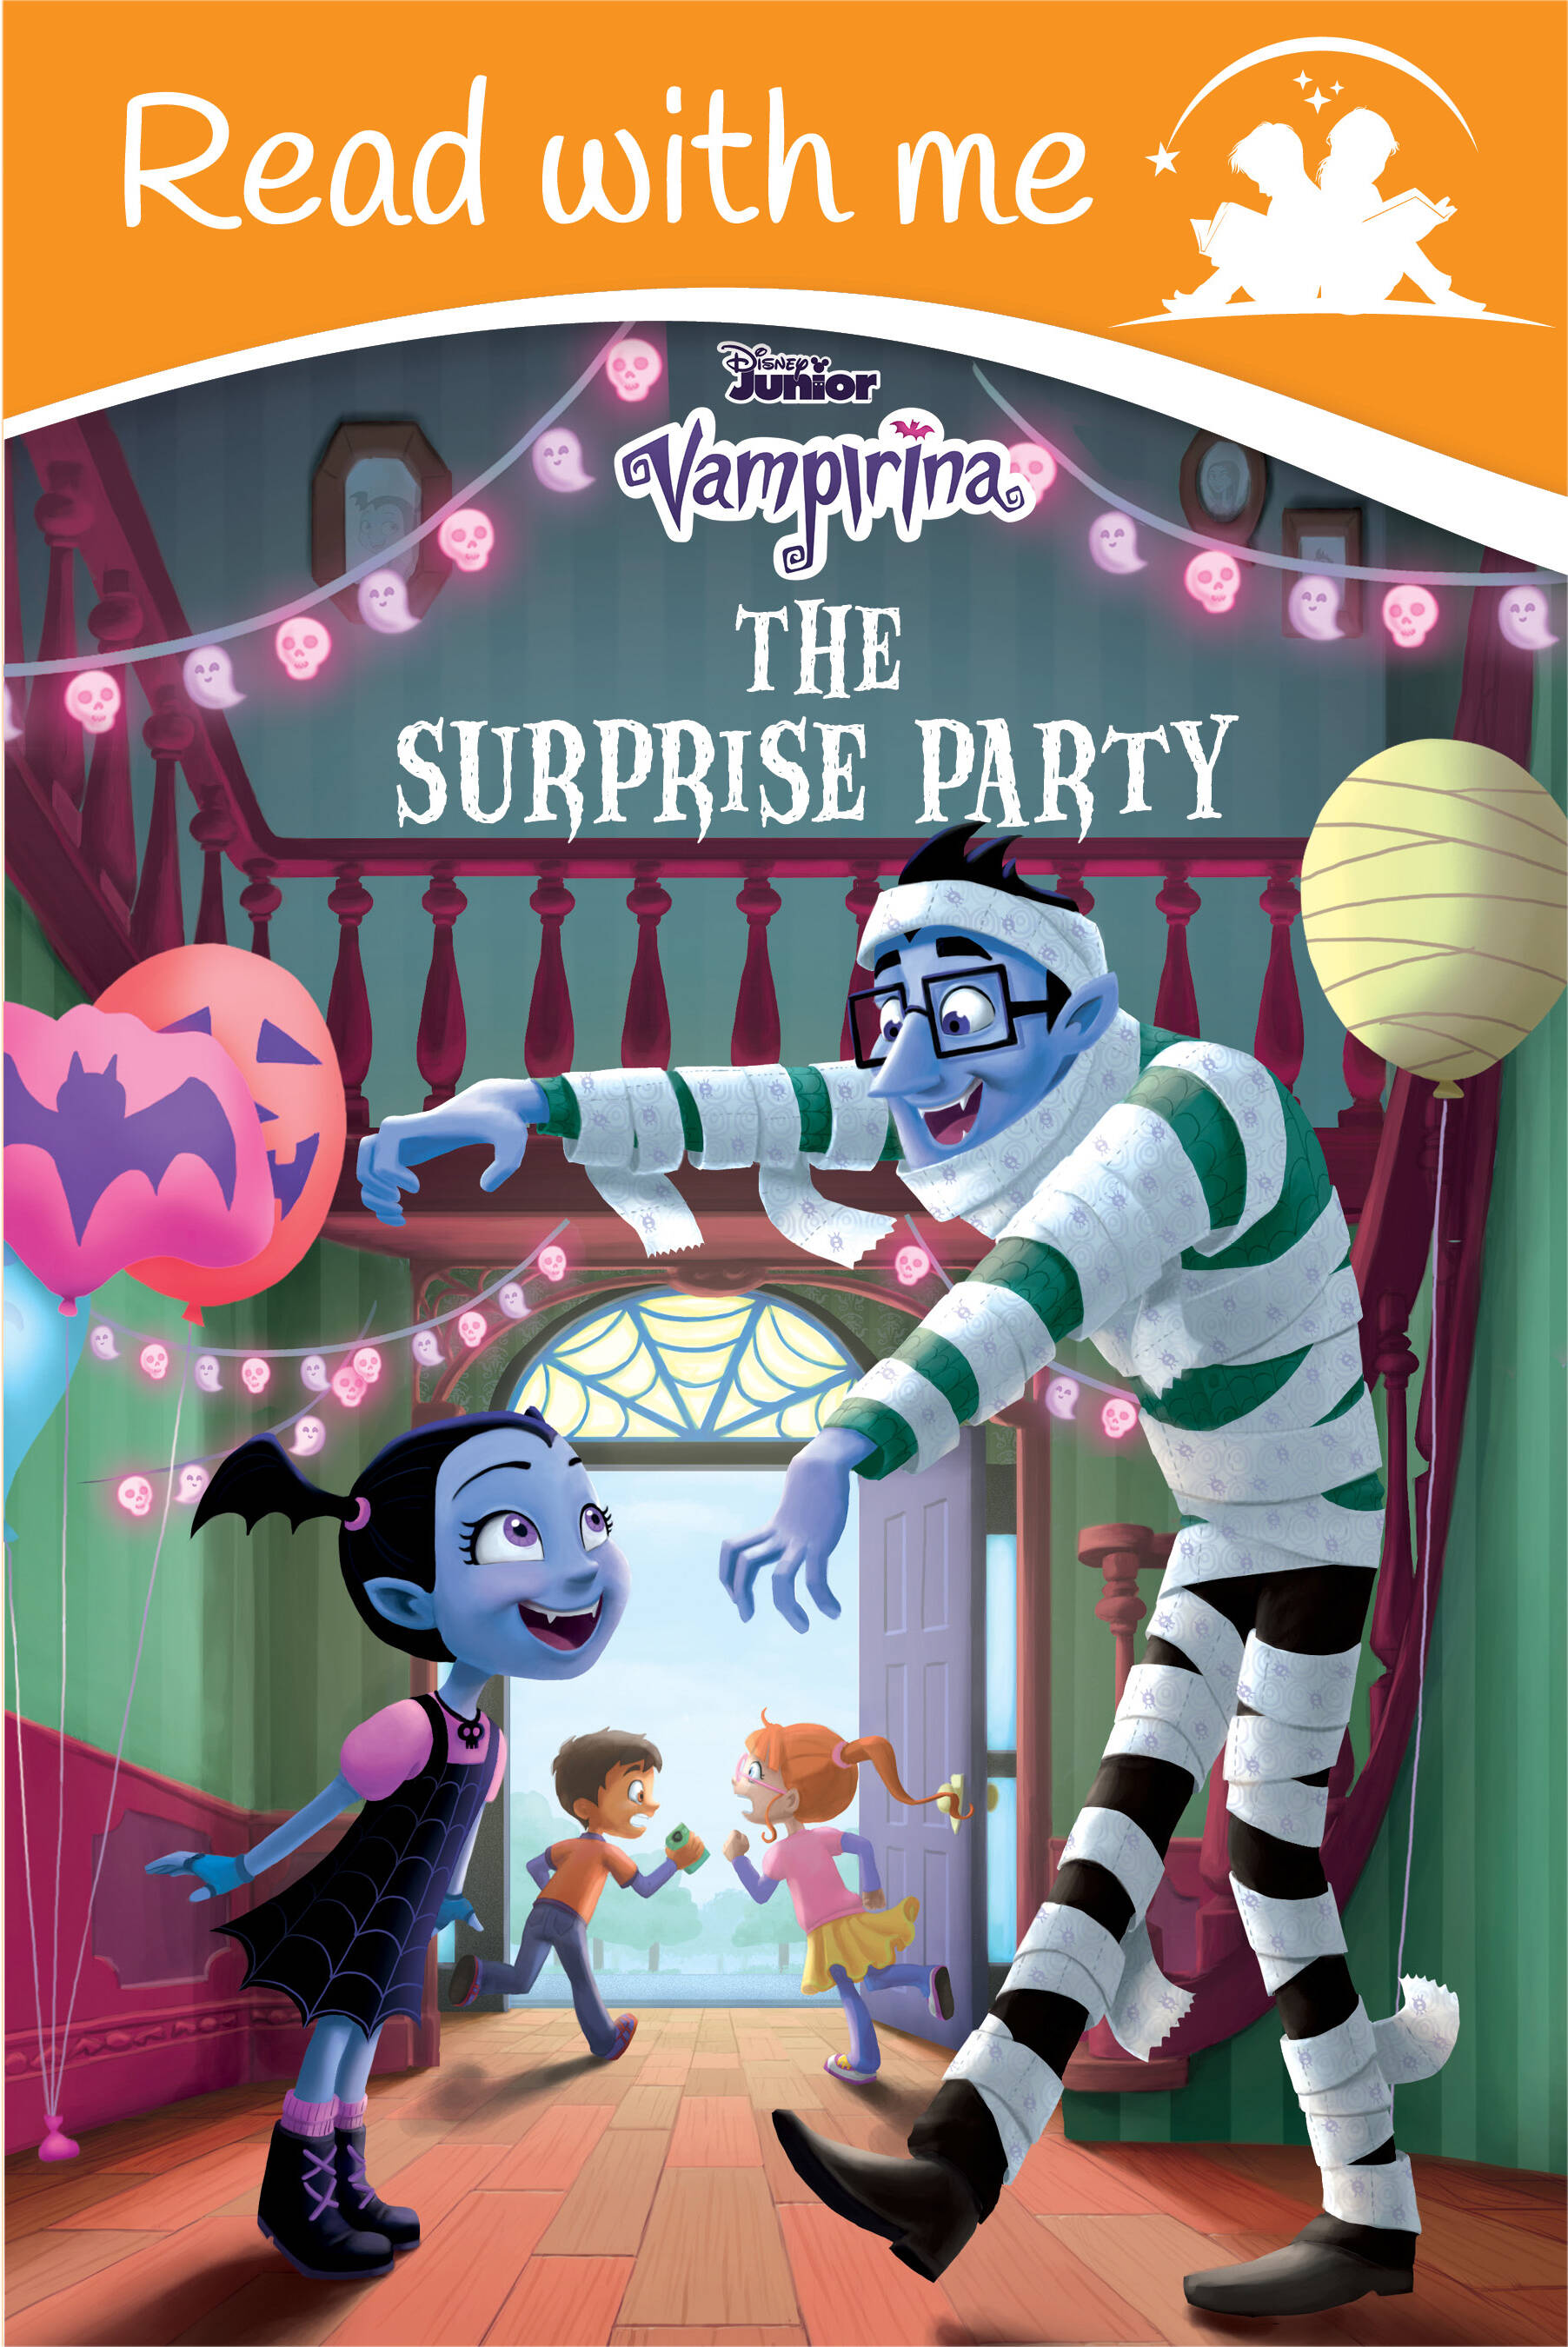 Disney Vampirina - Read With Me